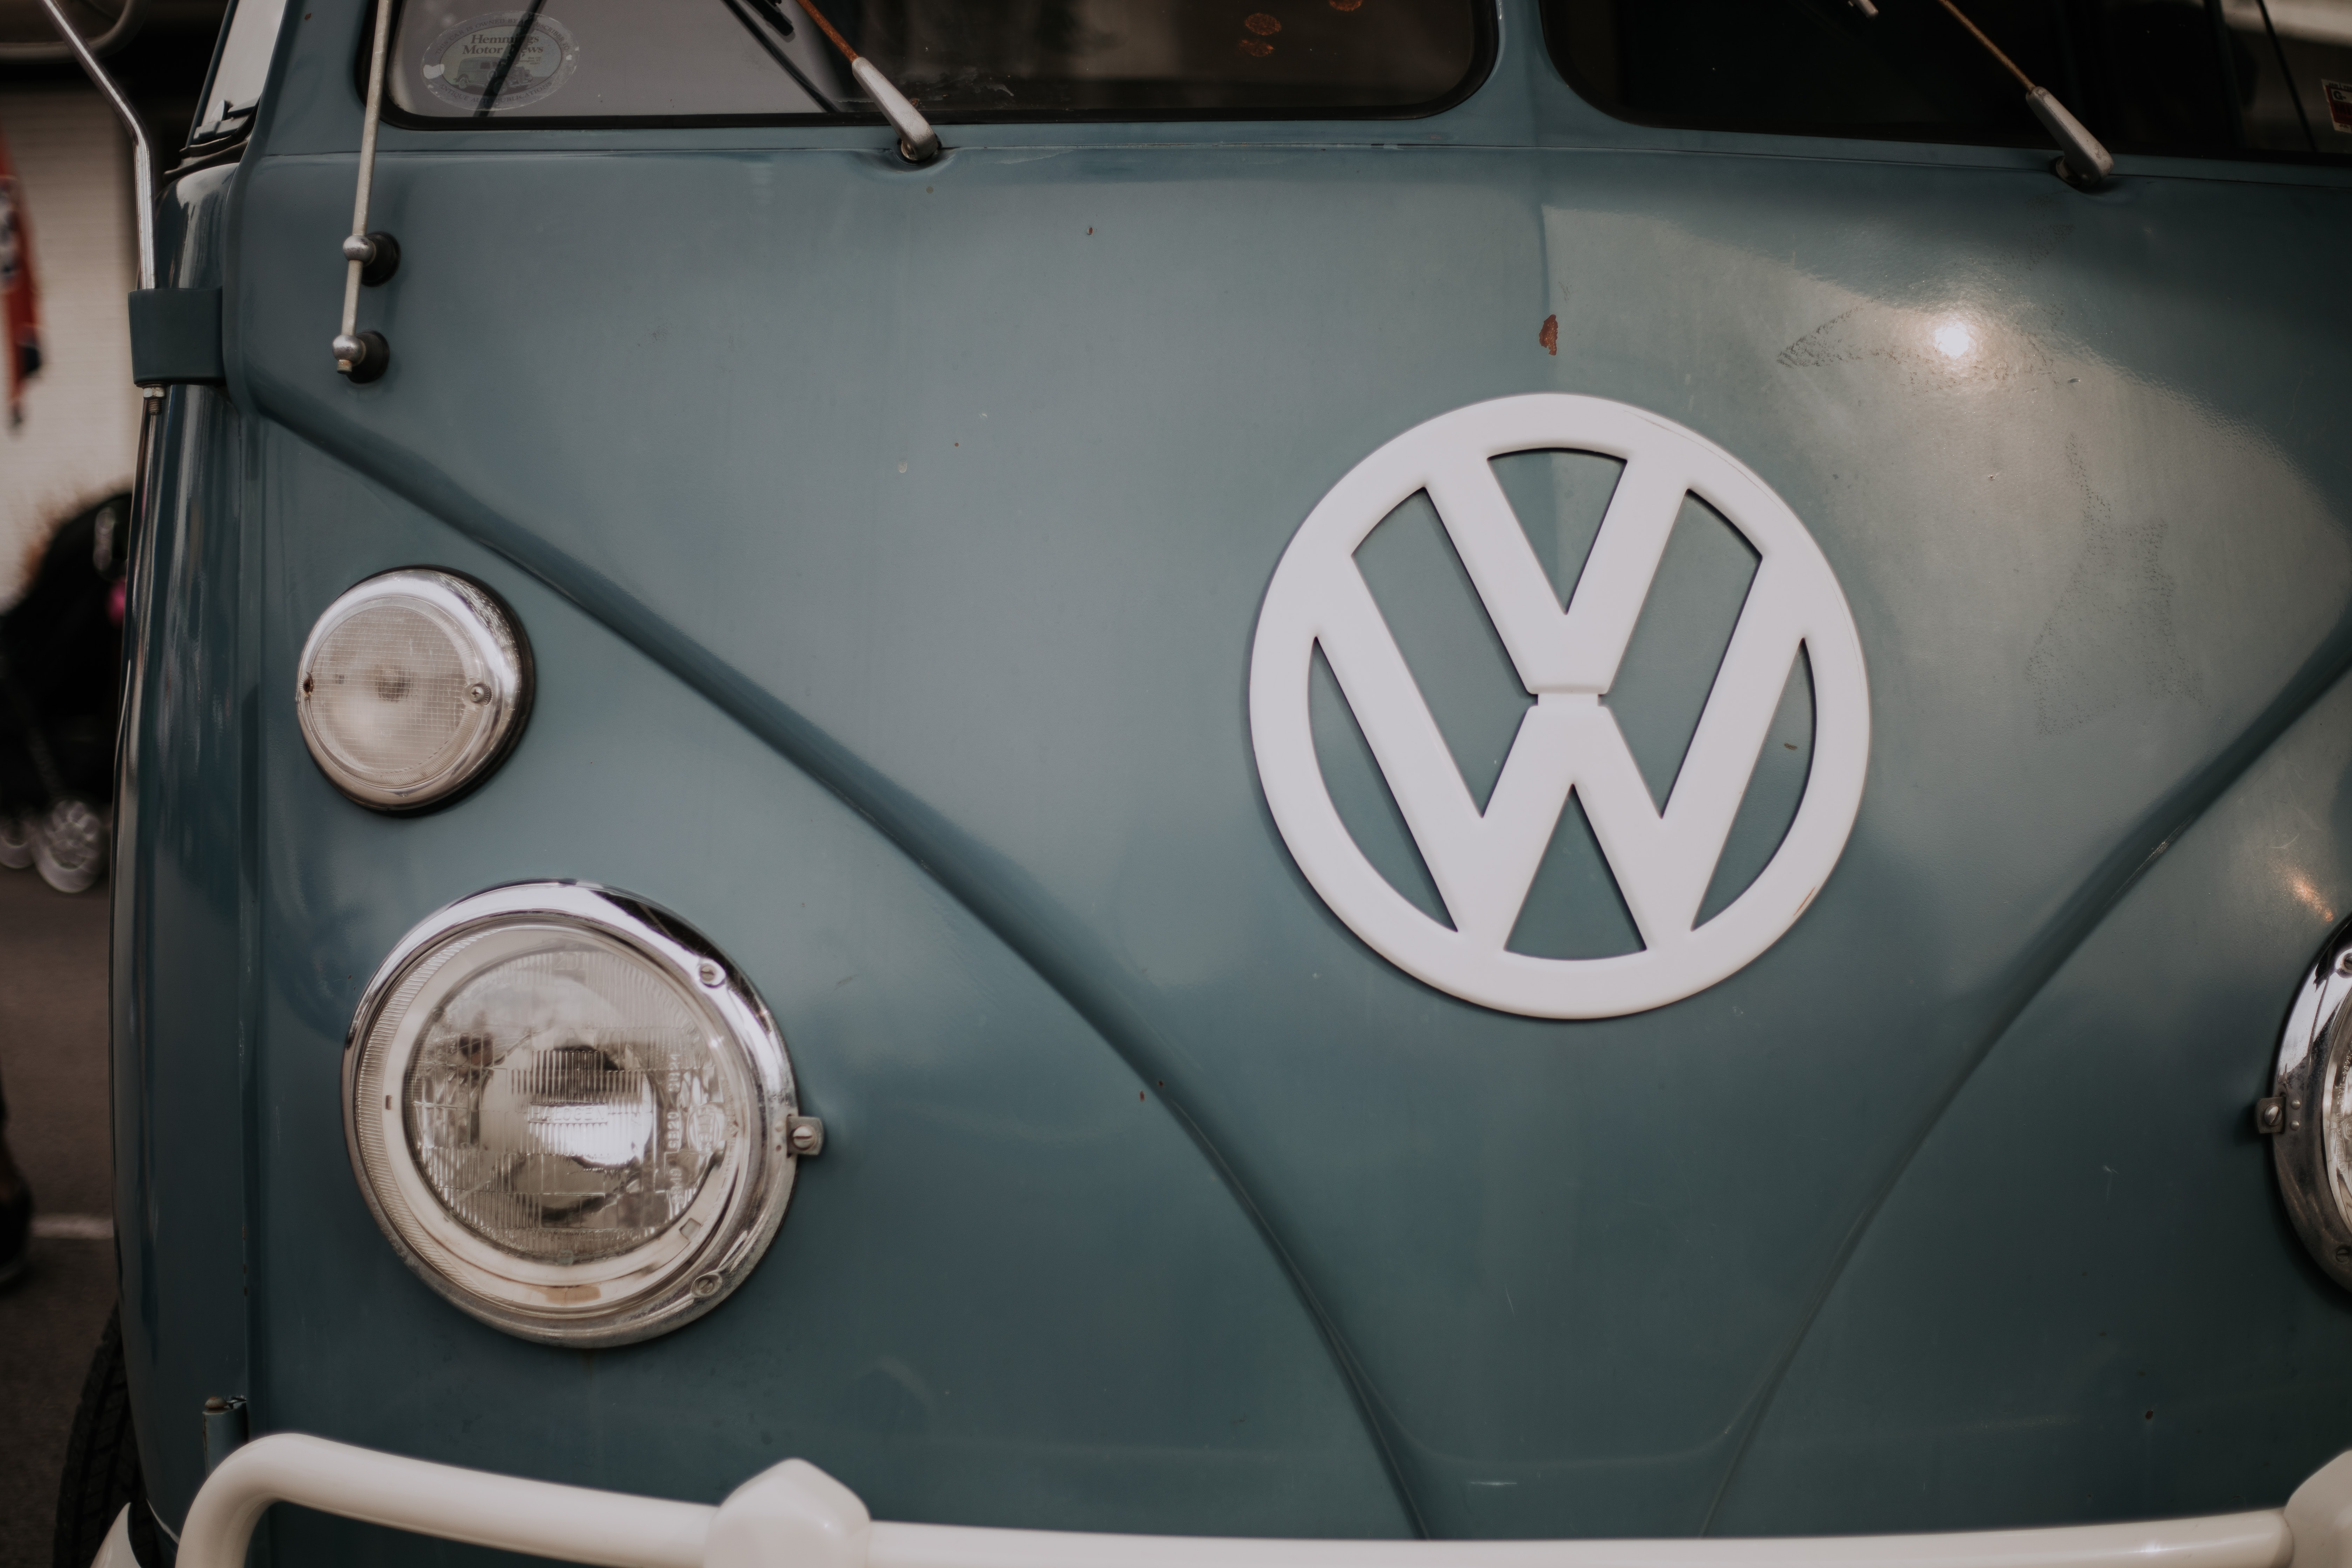 closeup photo of gray Volkswagen vehicle